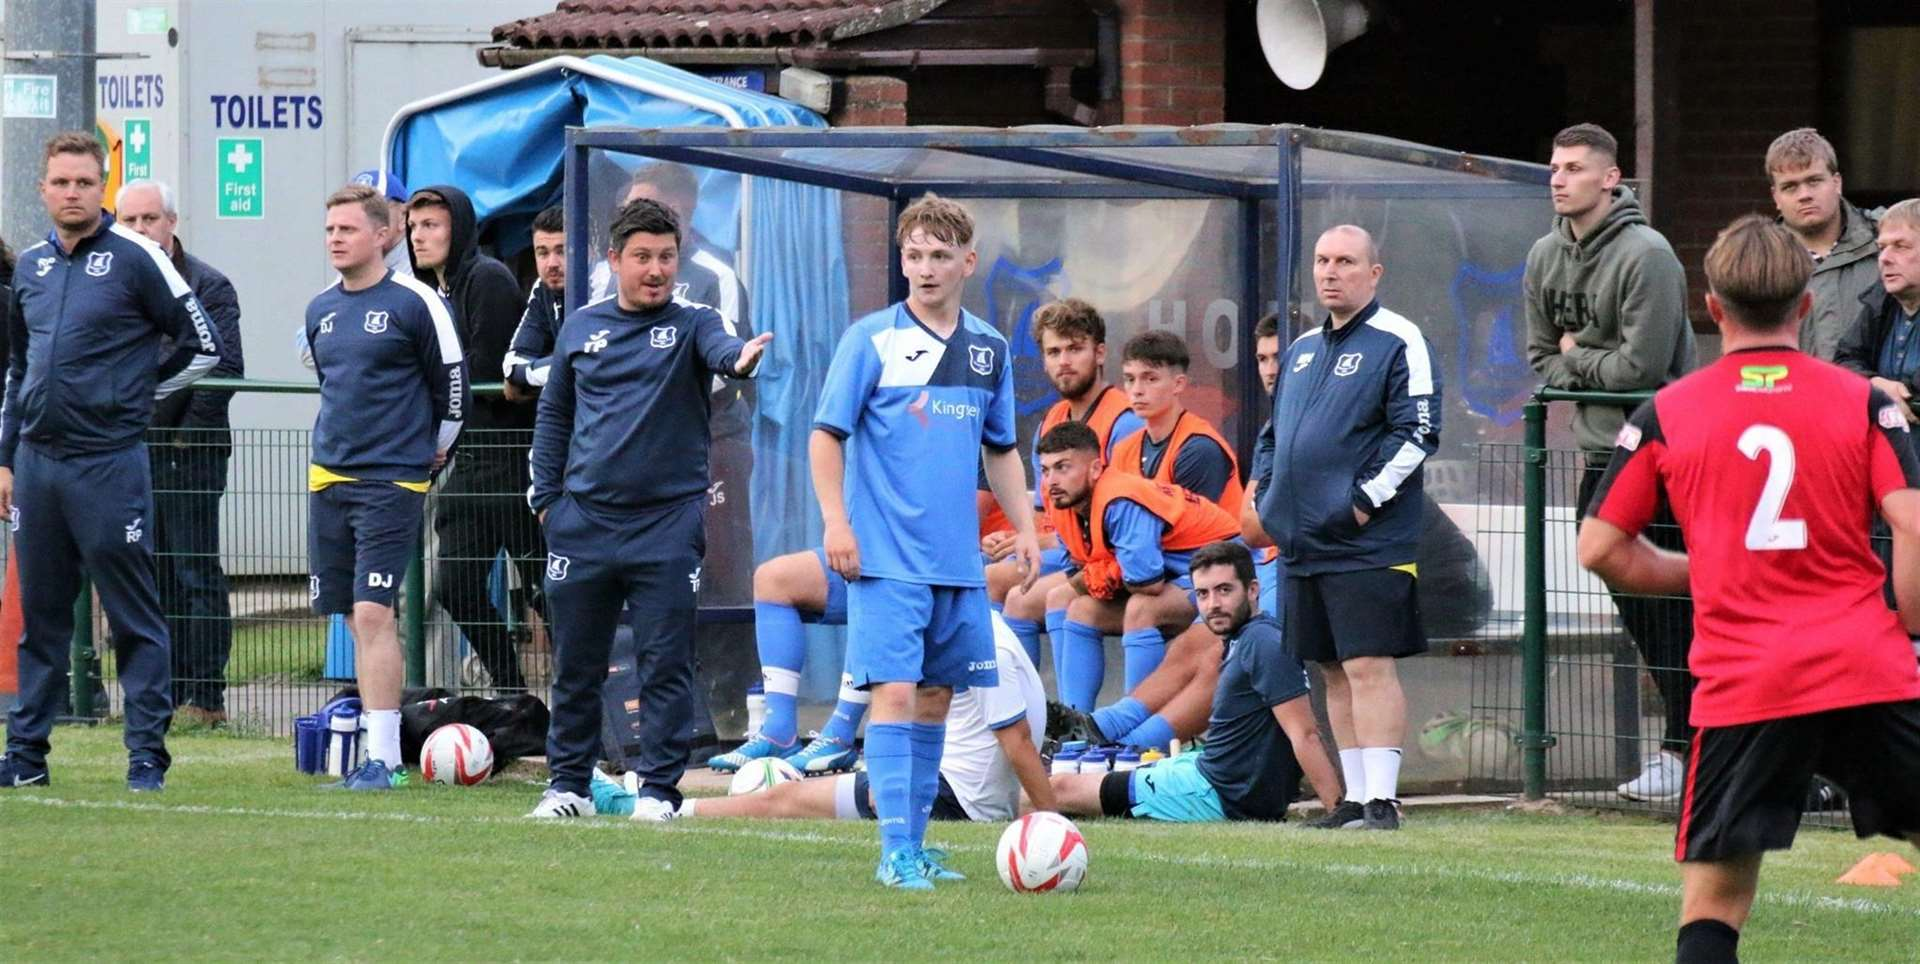 NEW SIGNING: Robbie Sweeney (pictured with Tom Parke behind him, left) has joined Stowmarket Town